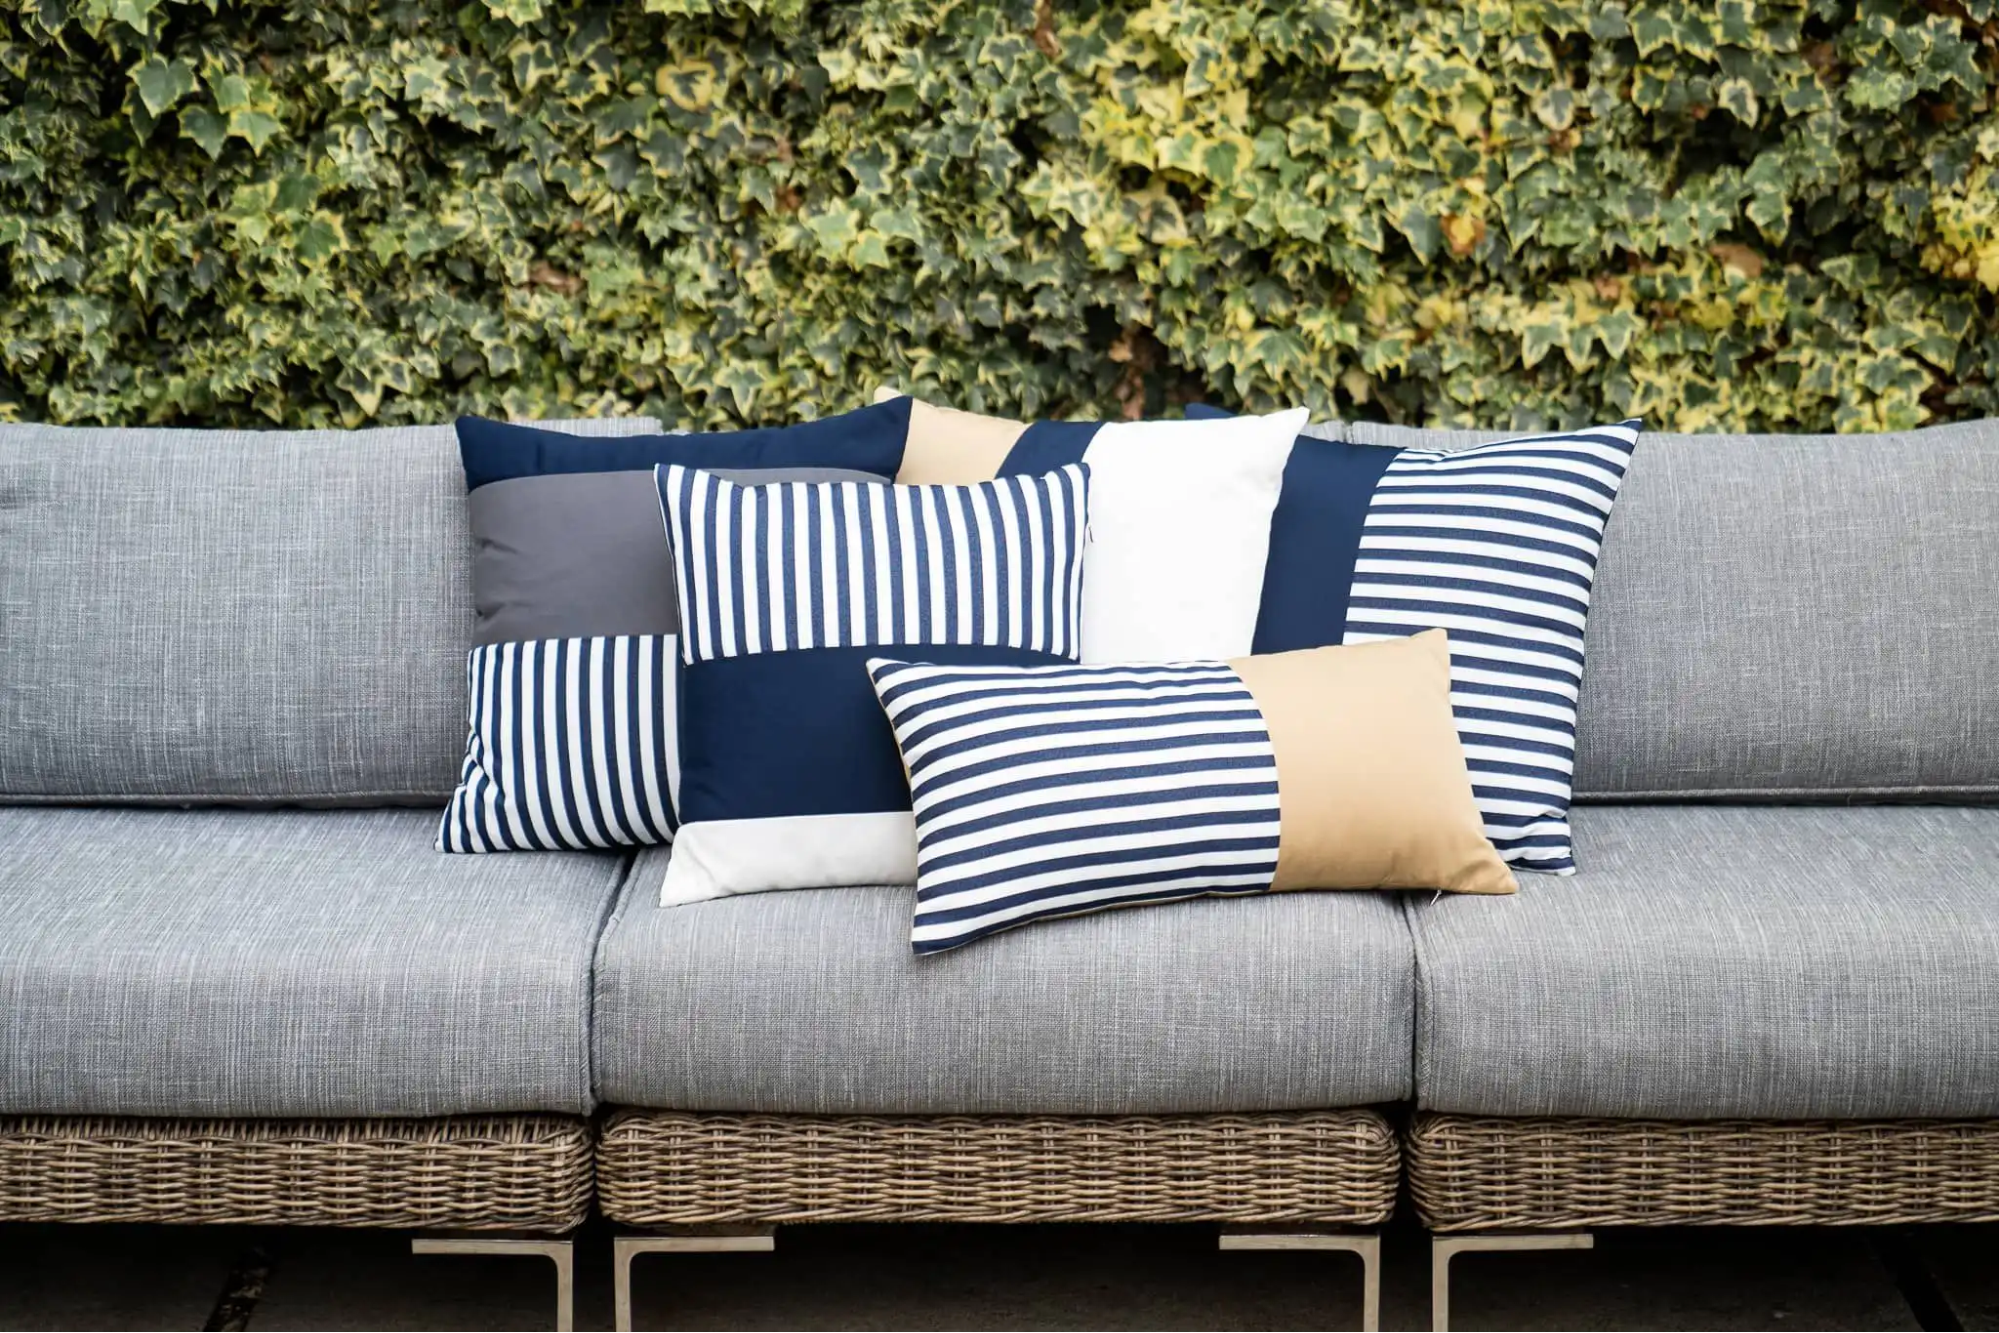 Outdoor Cushions Buying Guide: What To Look For When You Shop